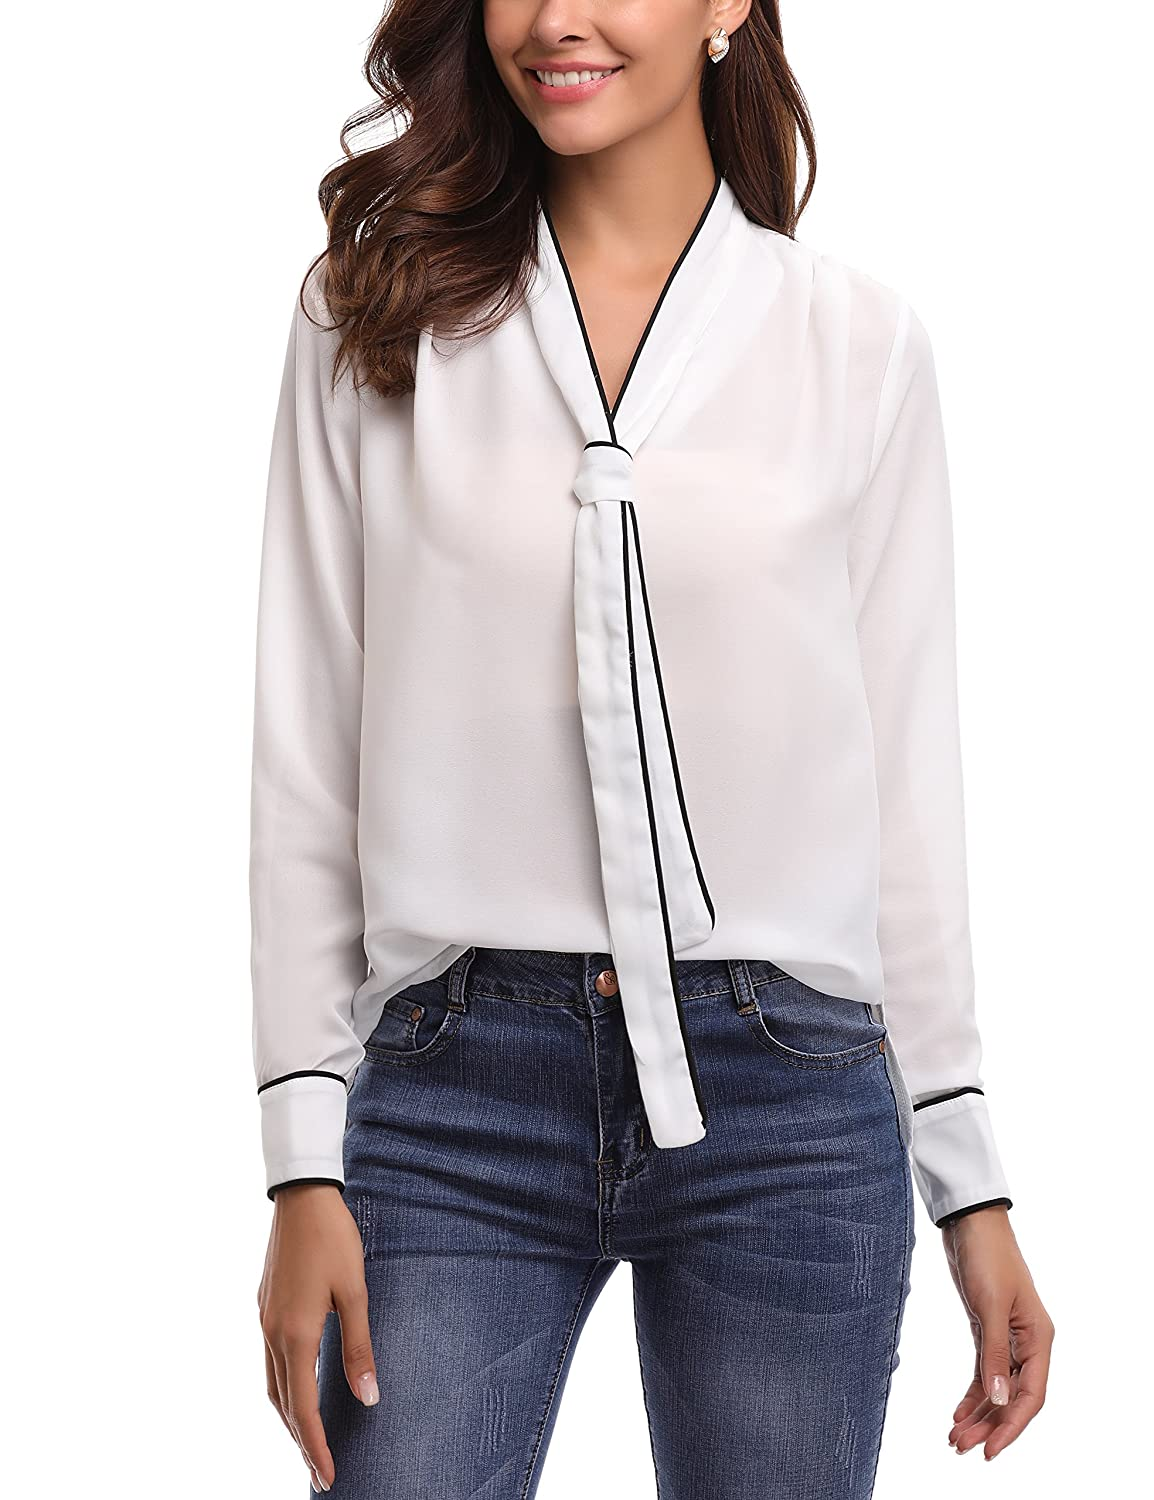 Abollria Womens Chiffon Long Sleeve Tops Casual Blouse Shirt AMN00022